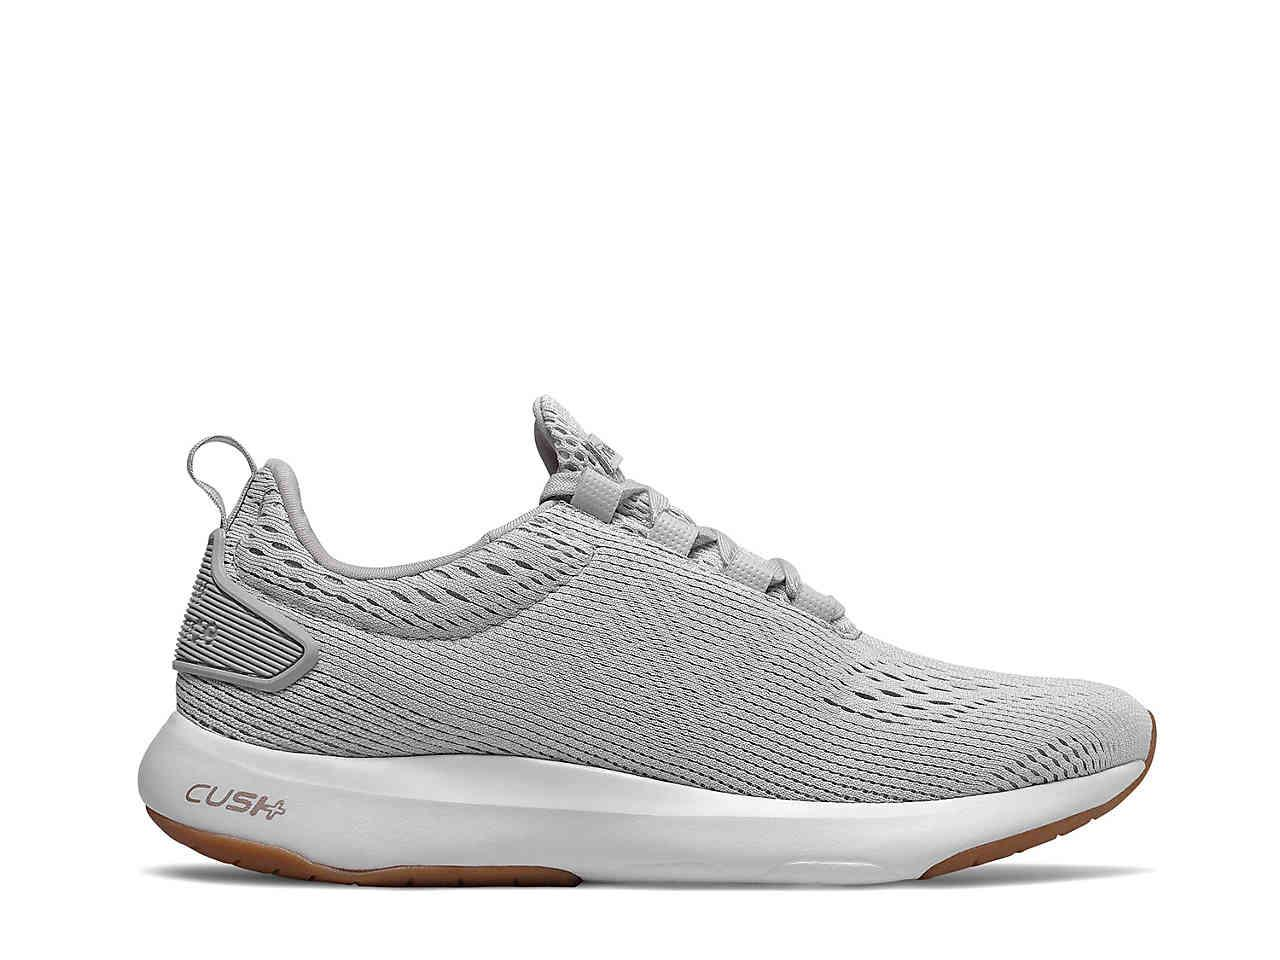 New Balance Synthetic 360 Running Shoe in Grey (Gray) - Lyst